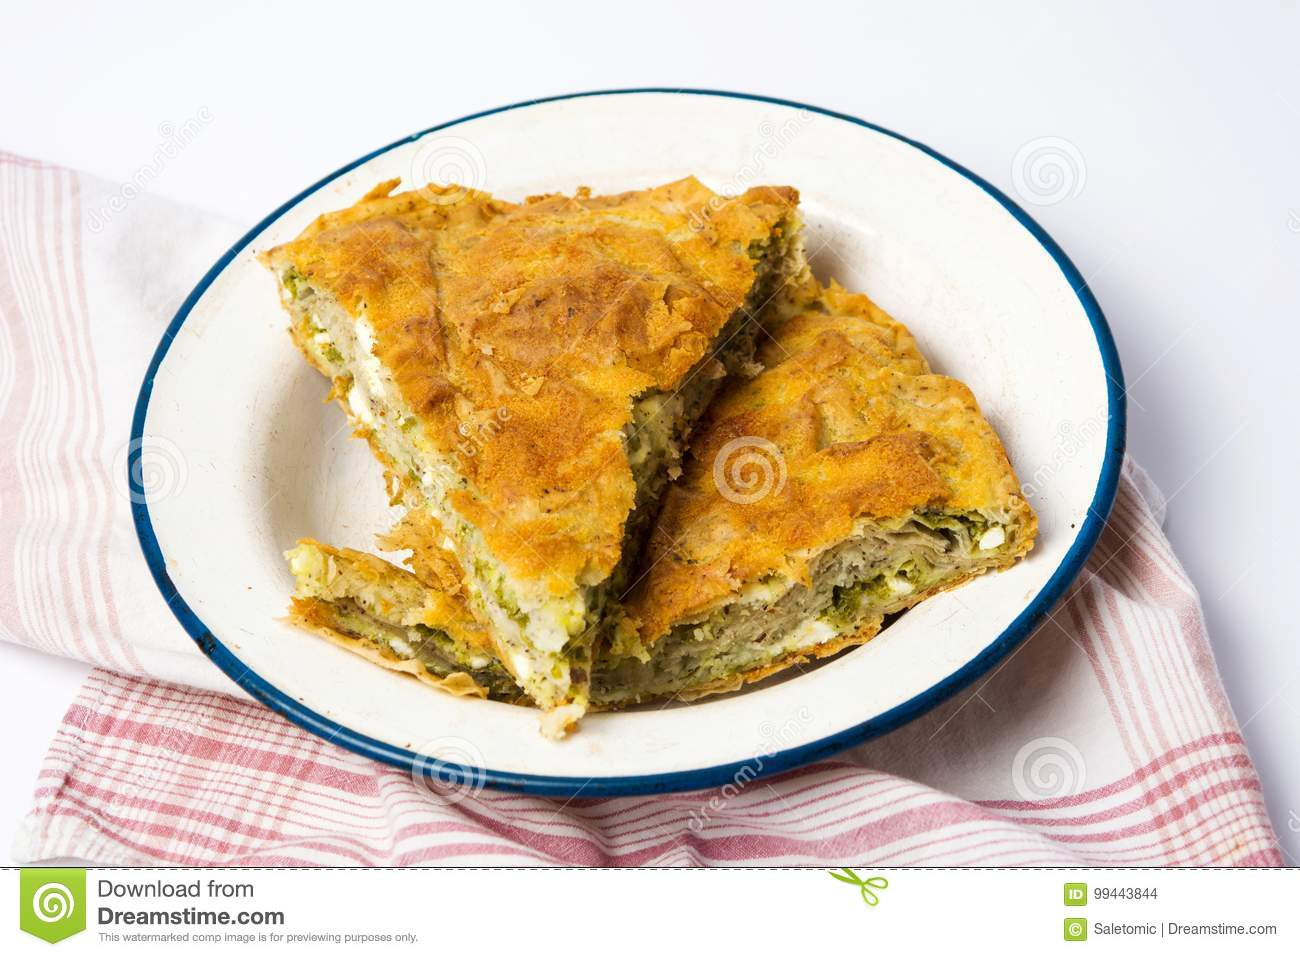 Delicious Pie with Cabbage 20